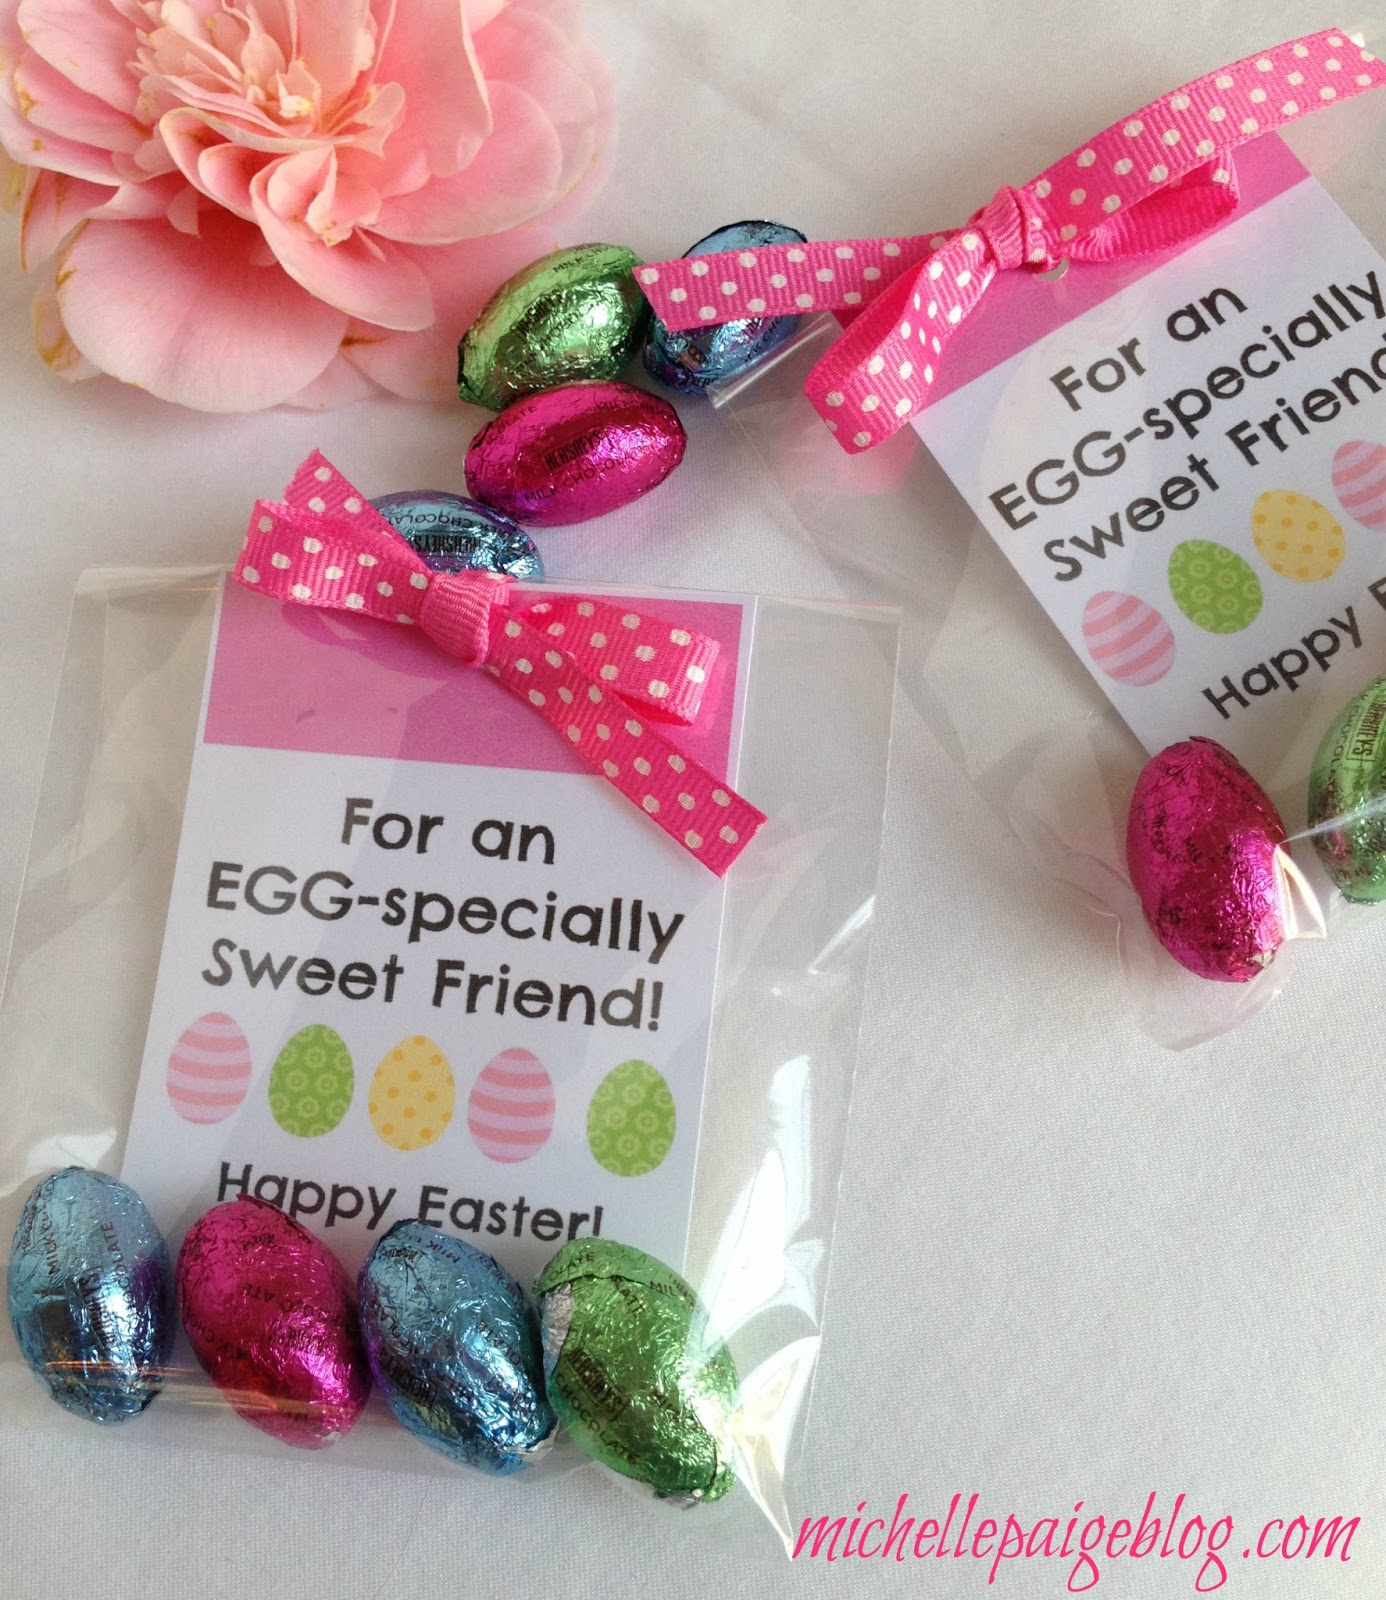 Michelle paige blogs easter favors for teachers friends and family negle Image collections